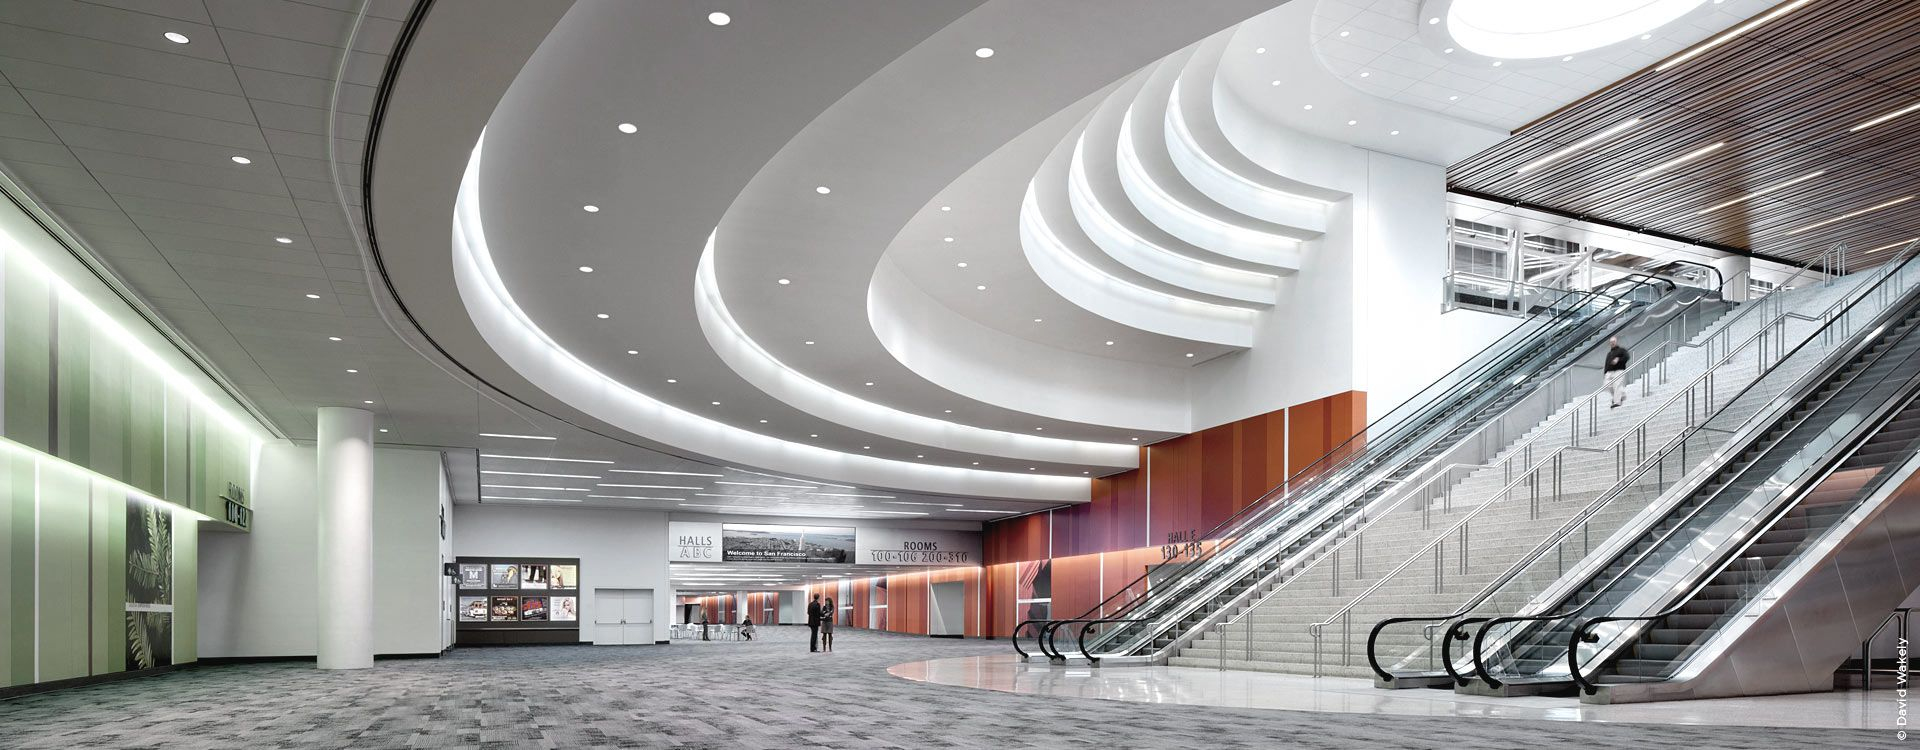 bnr-Moscone-Convention-Center_HospitalityDavid-Wakely-EN-US